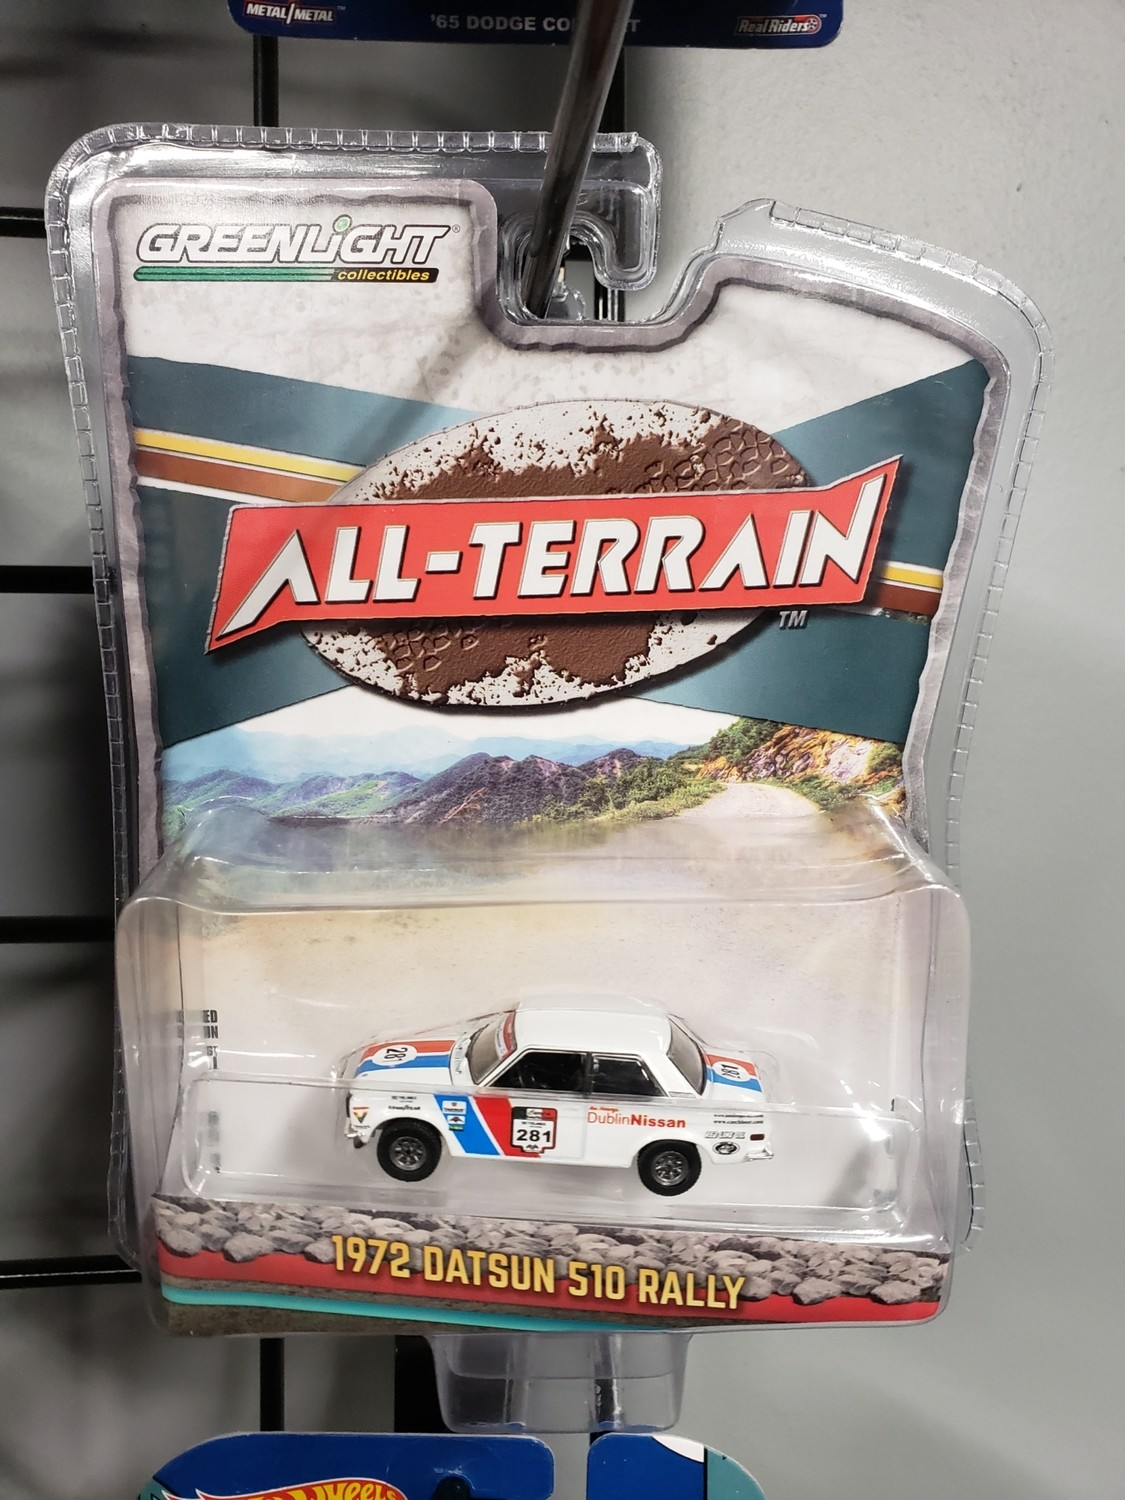 Greenlight All-terrain-1972 Datsun 510 Rally